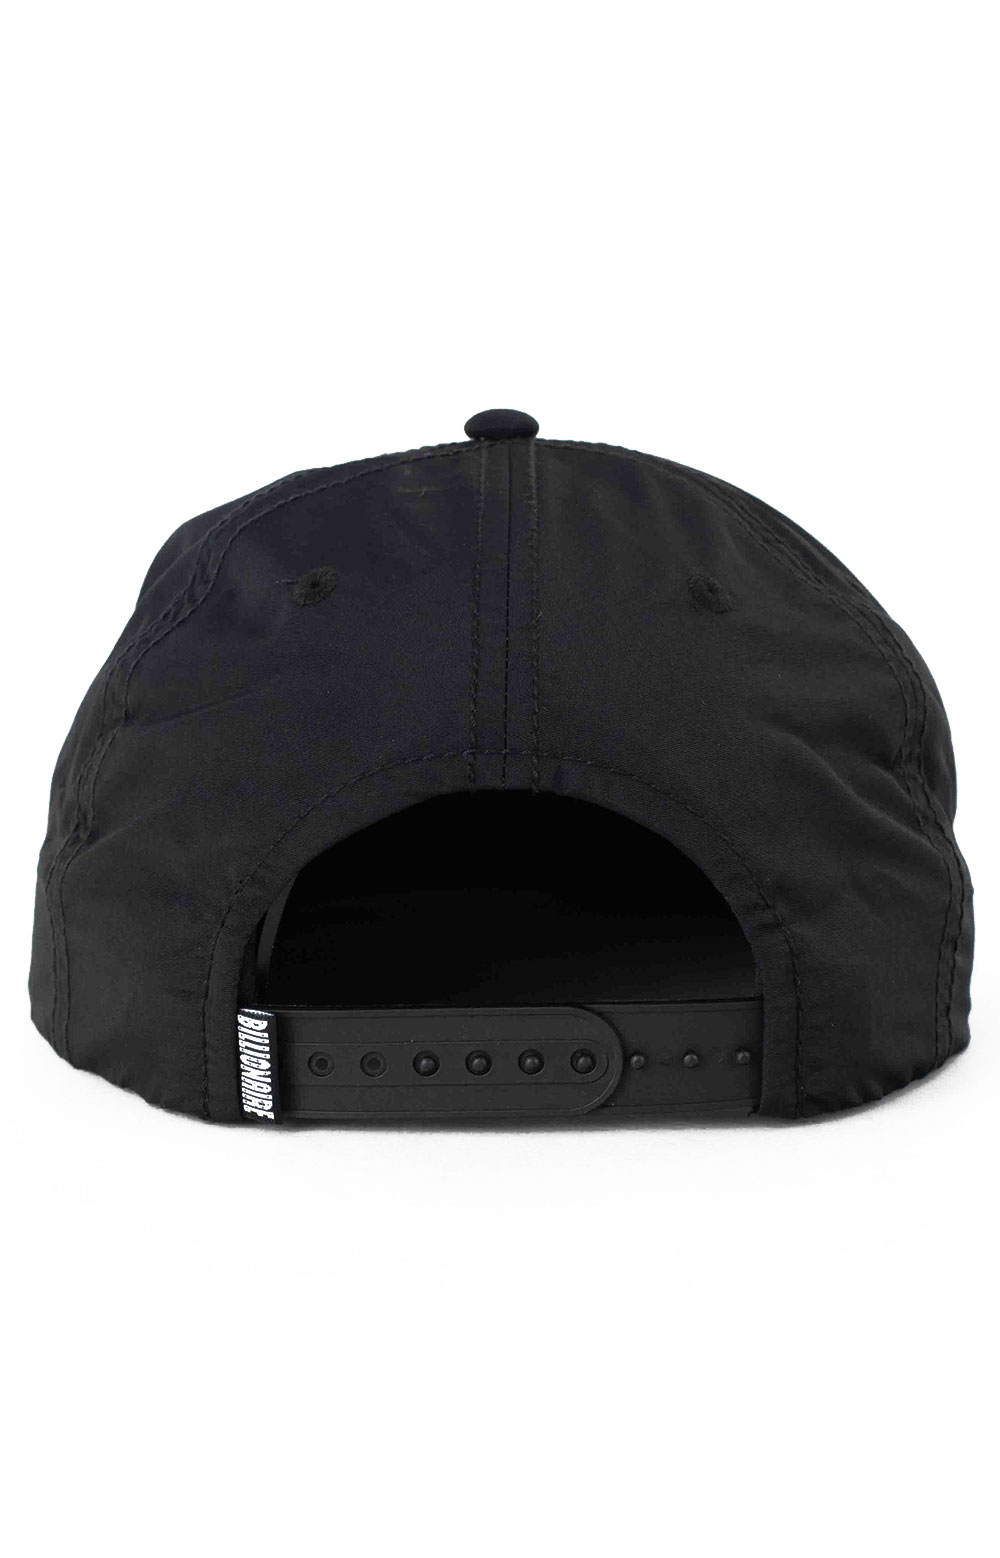 Clubhouse Snap-Back Hat - Black  2